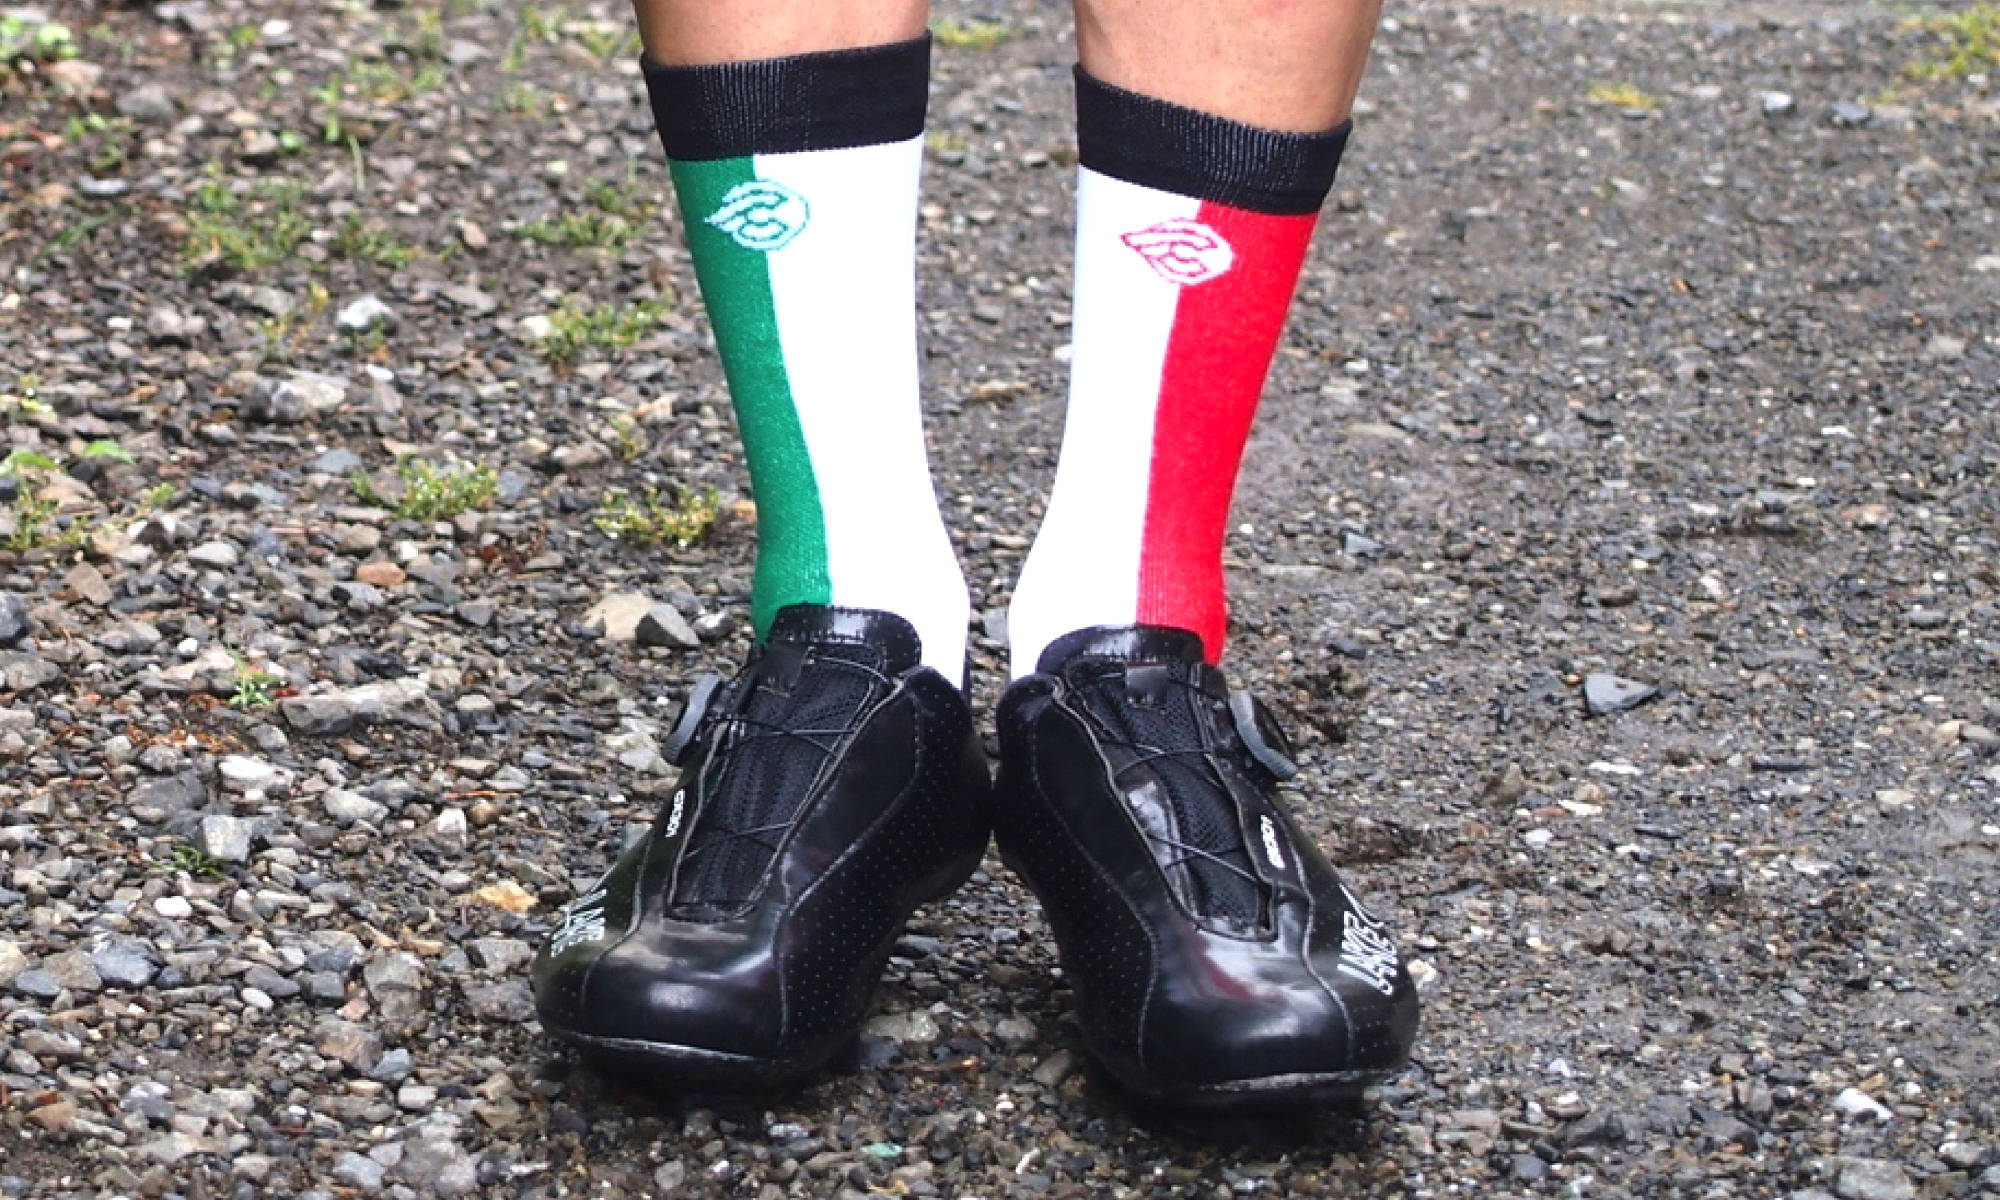 The Wonderful Socks Cinelli front